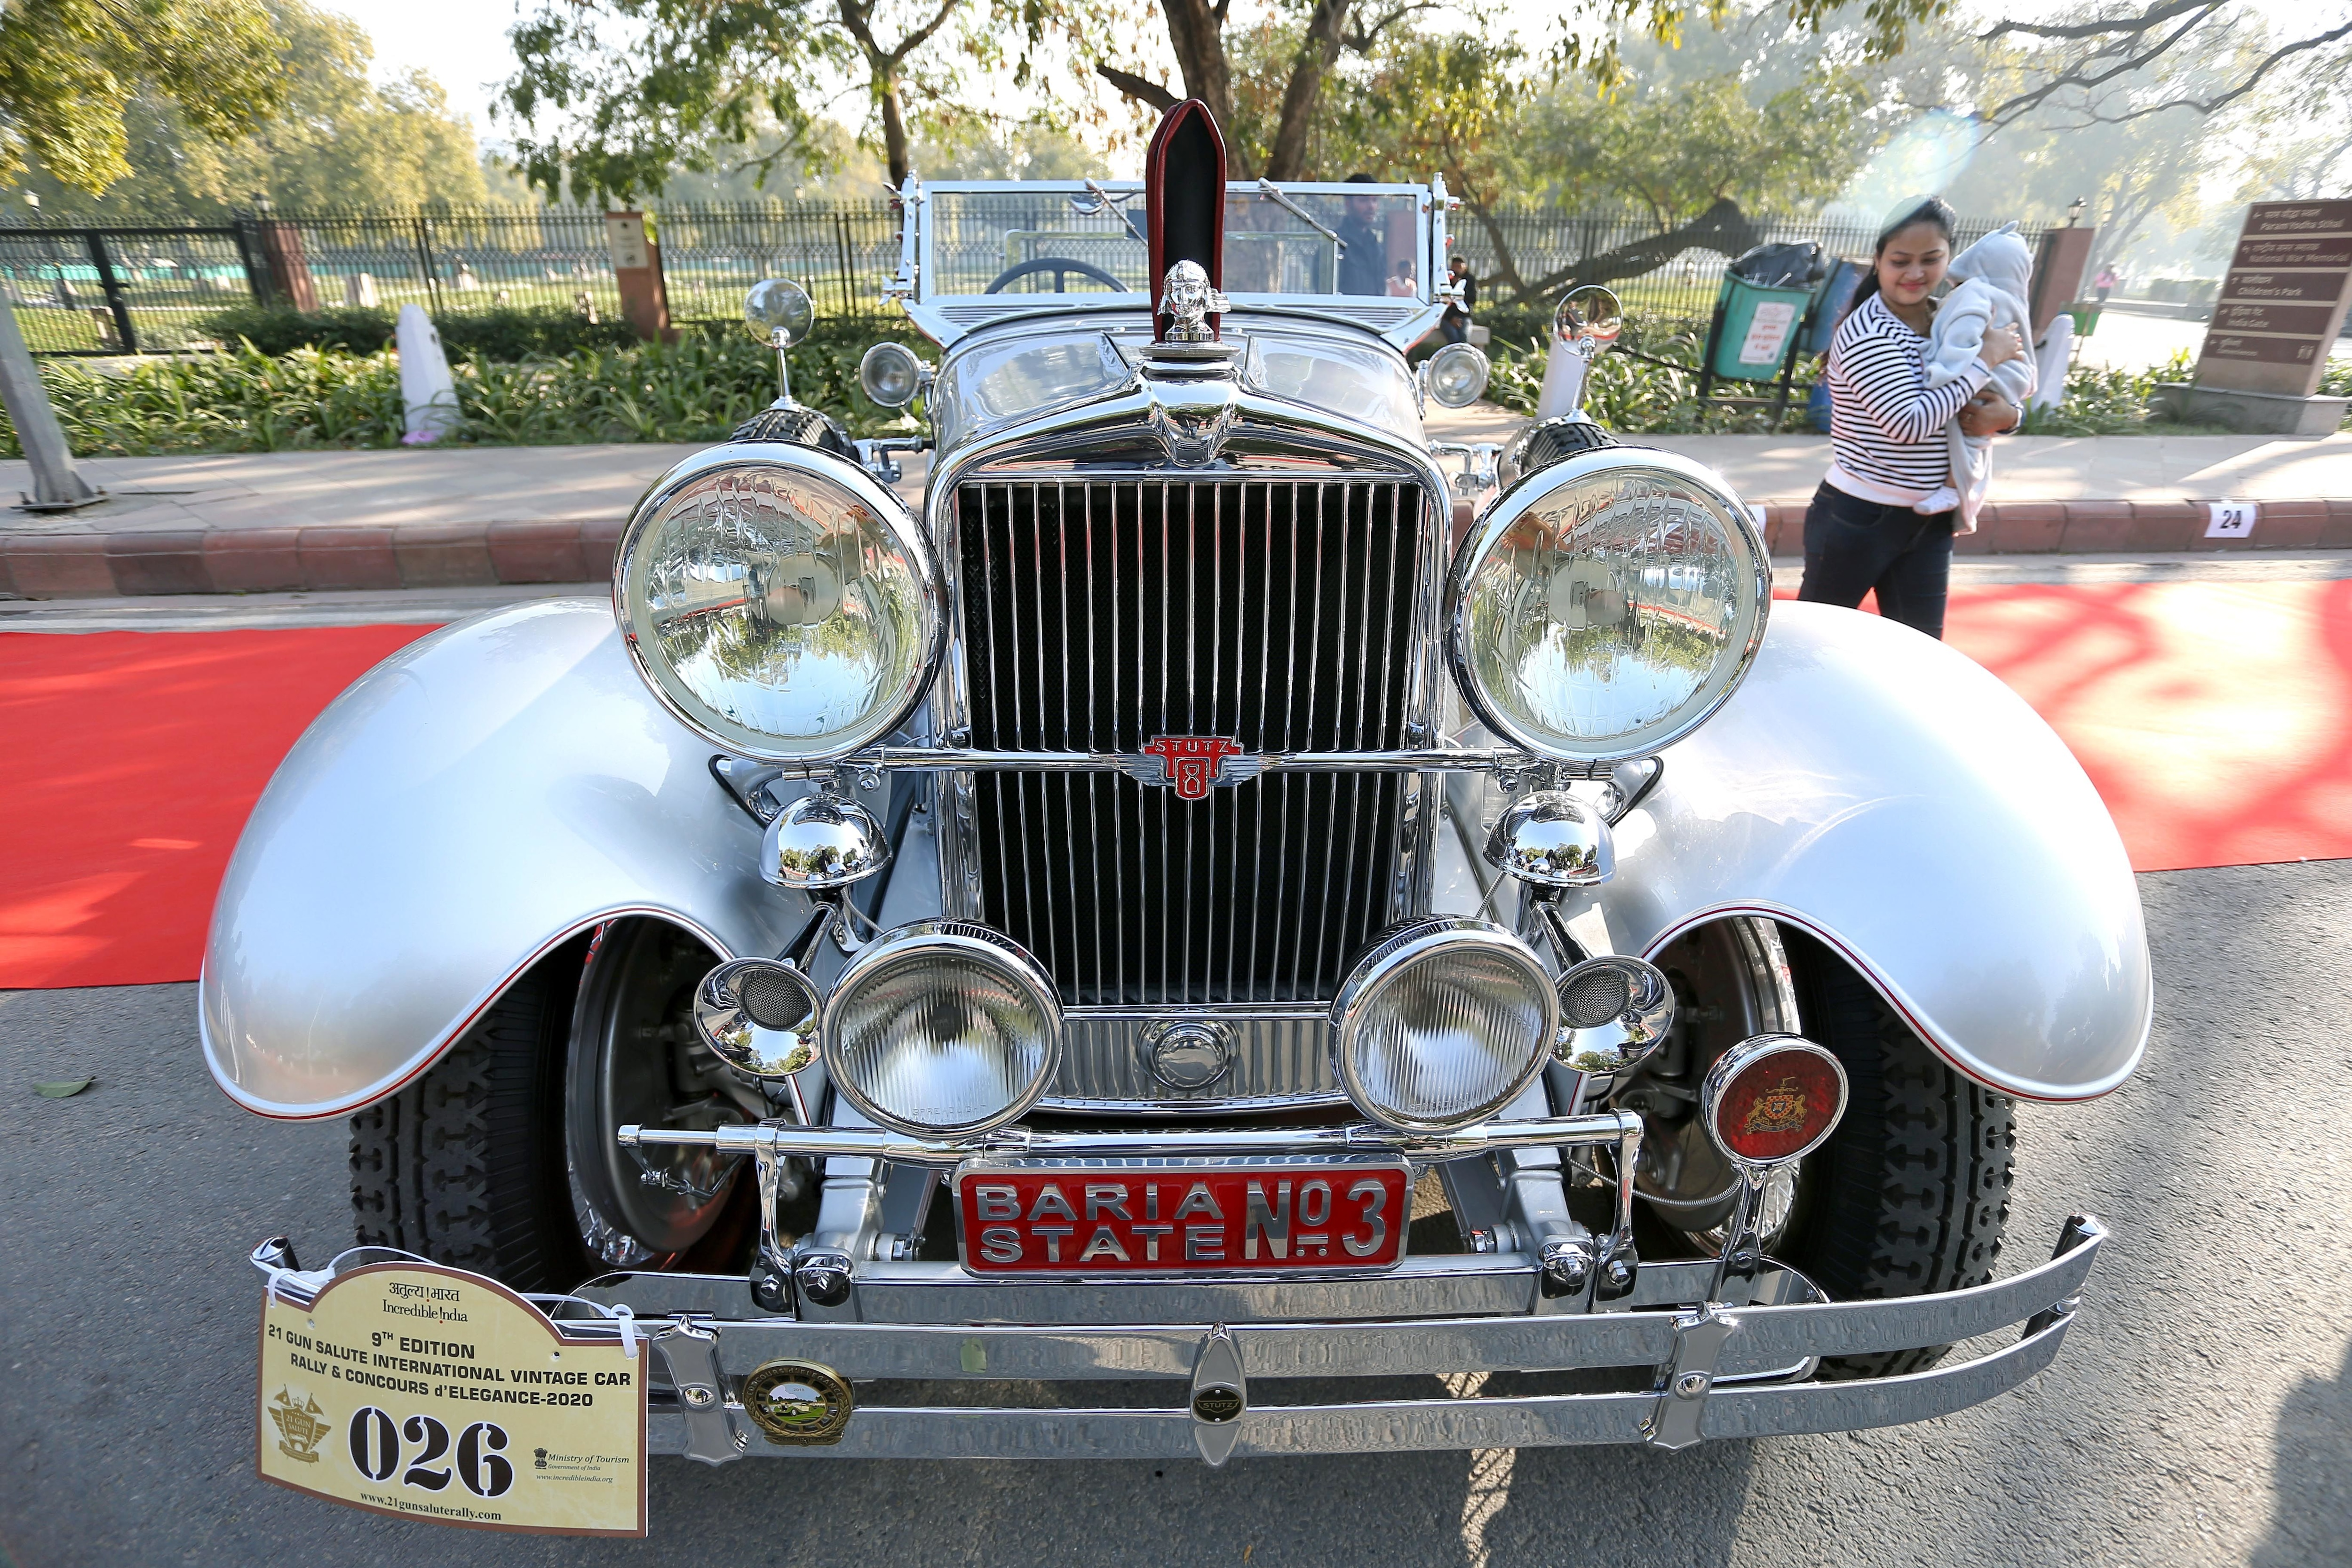 More than 150 vintage cars were parked in front of the Amar Jawan Jyoti which made for a stunning view along with 34 esteemed judges from around the globe.